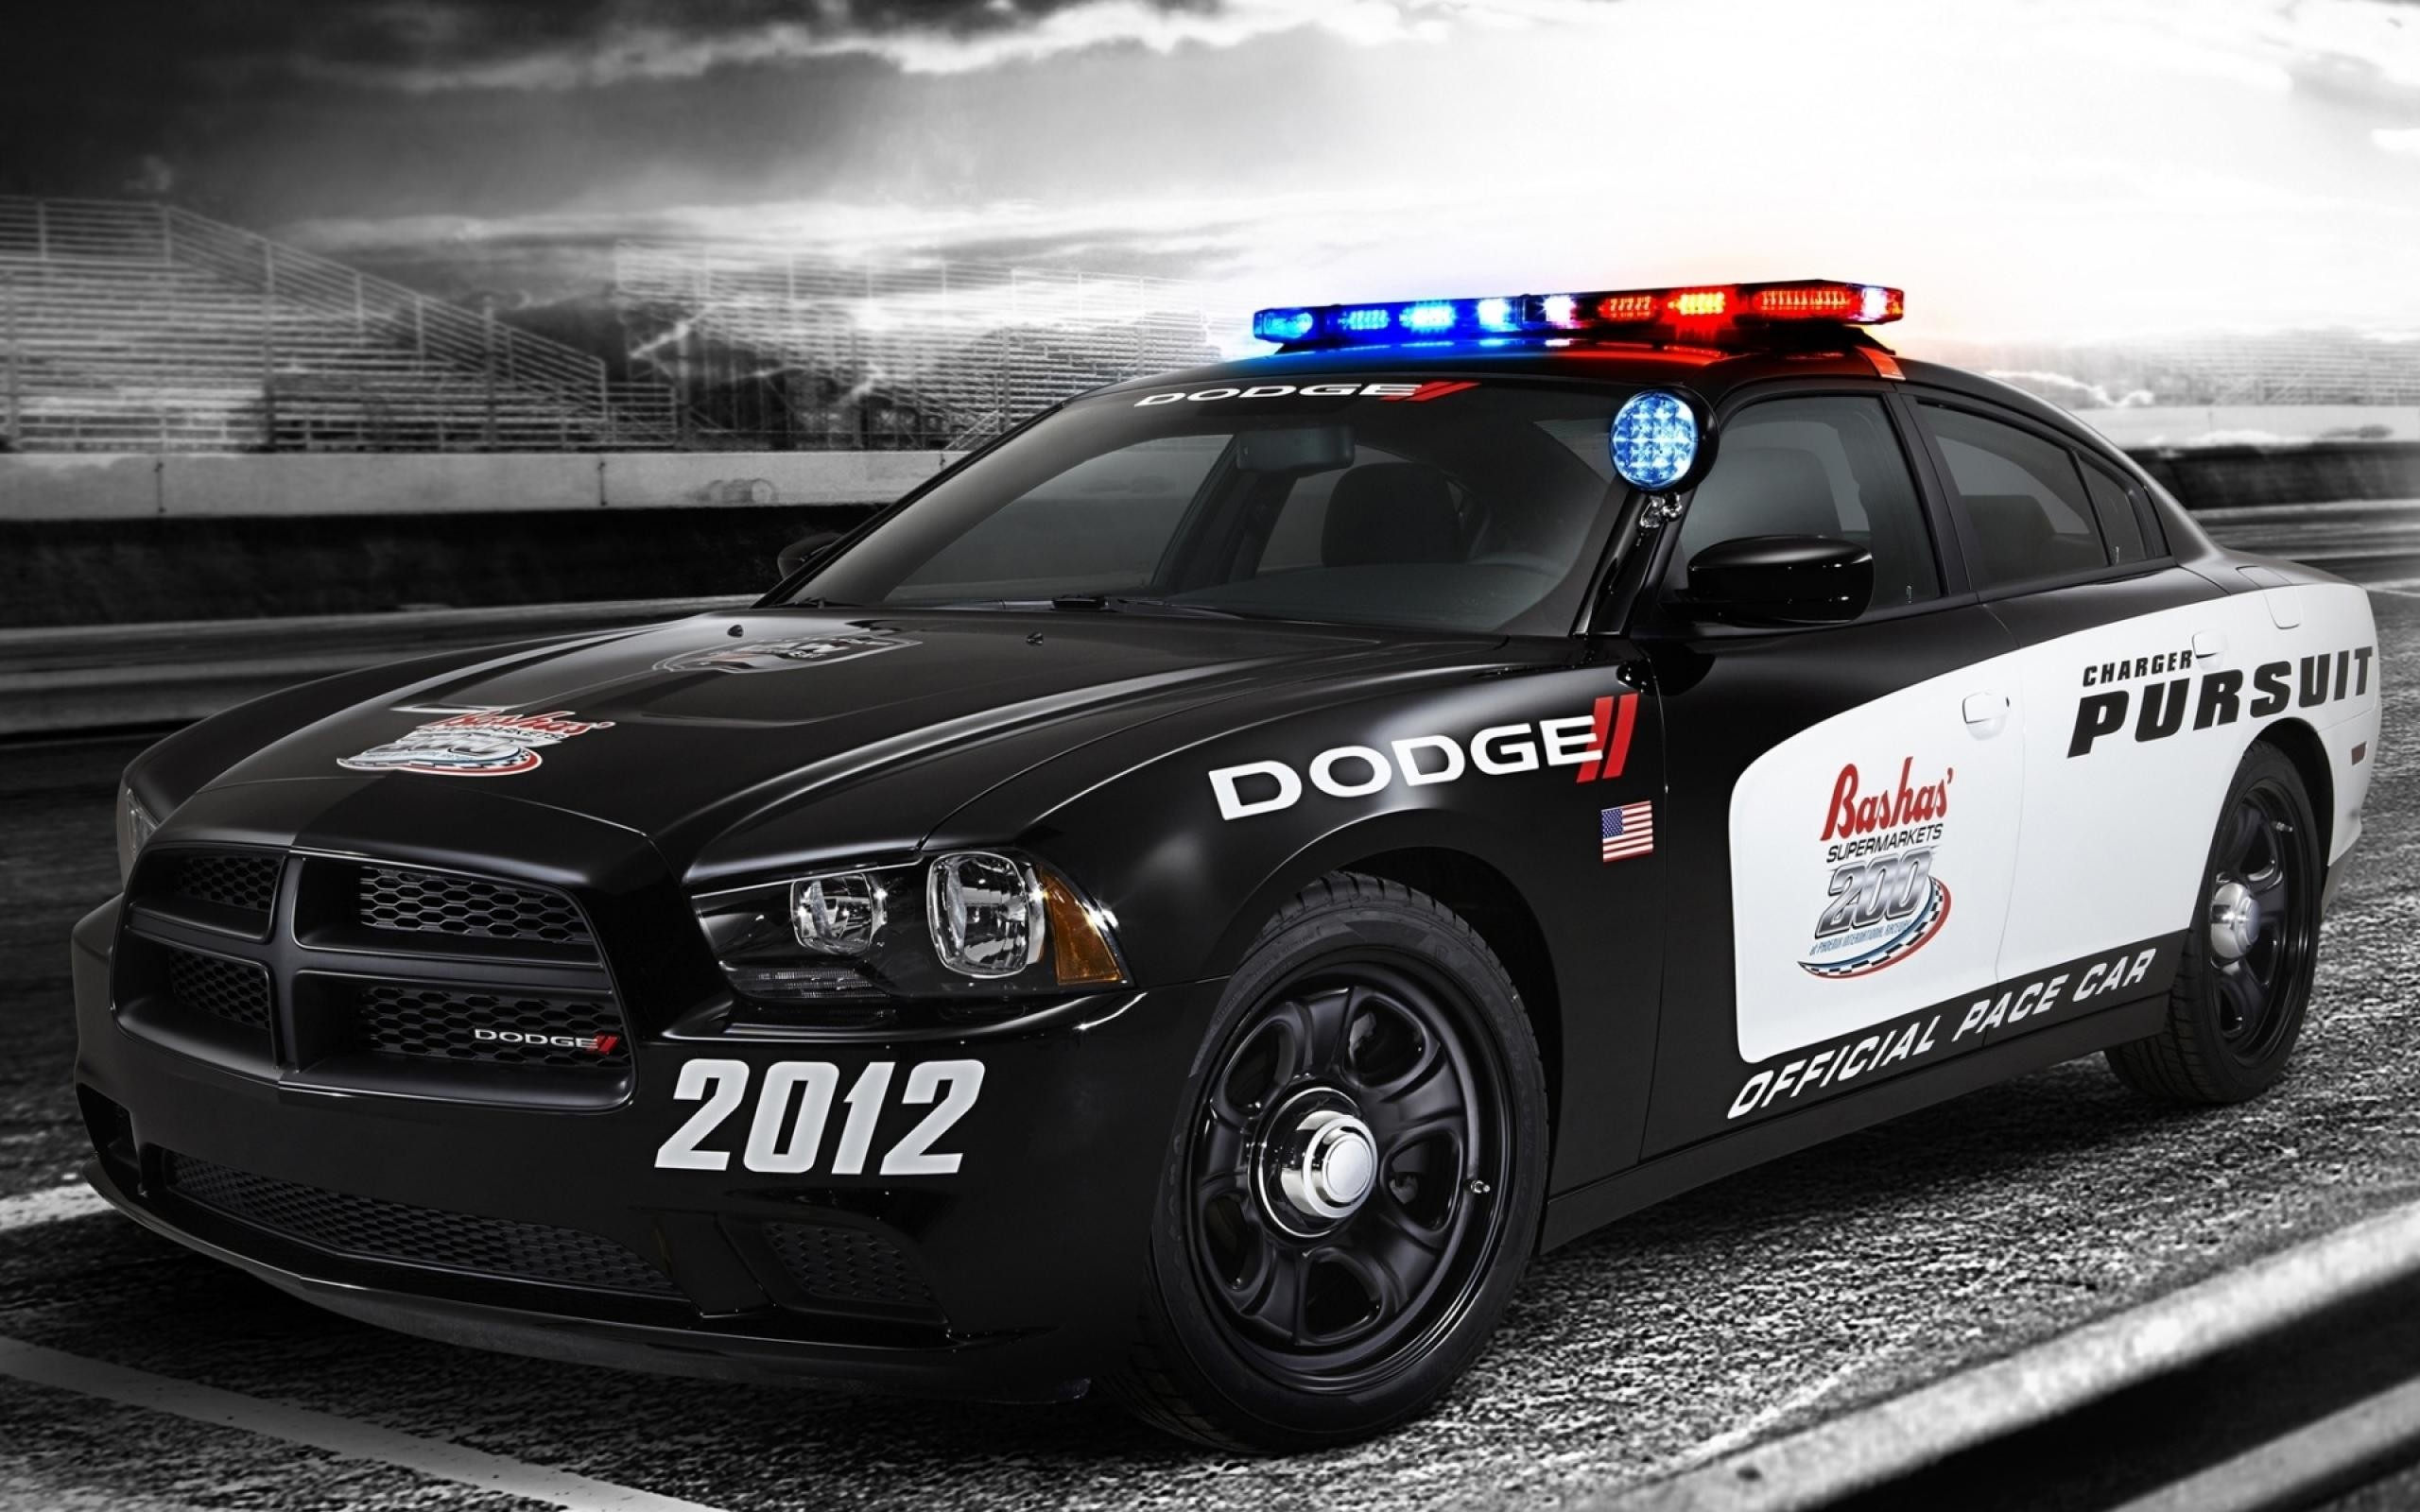 2560x1600 Police Car Wallpaper High Resolution